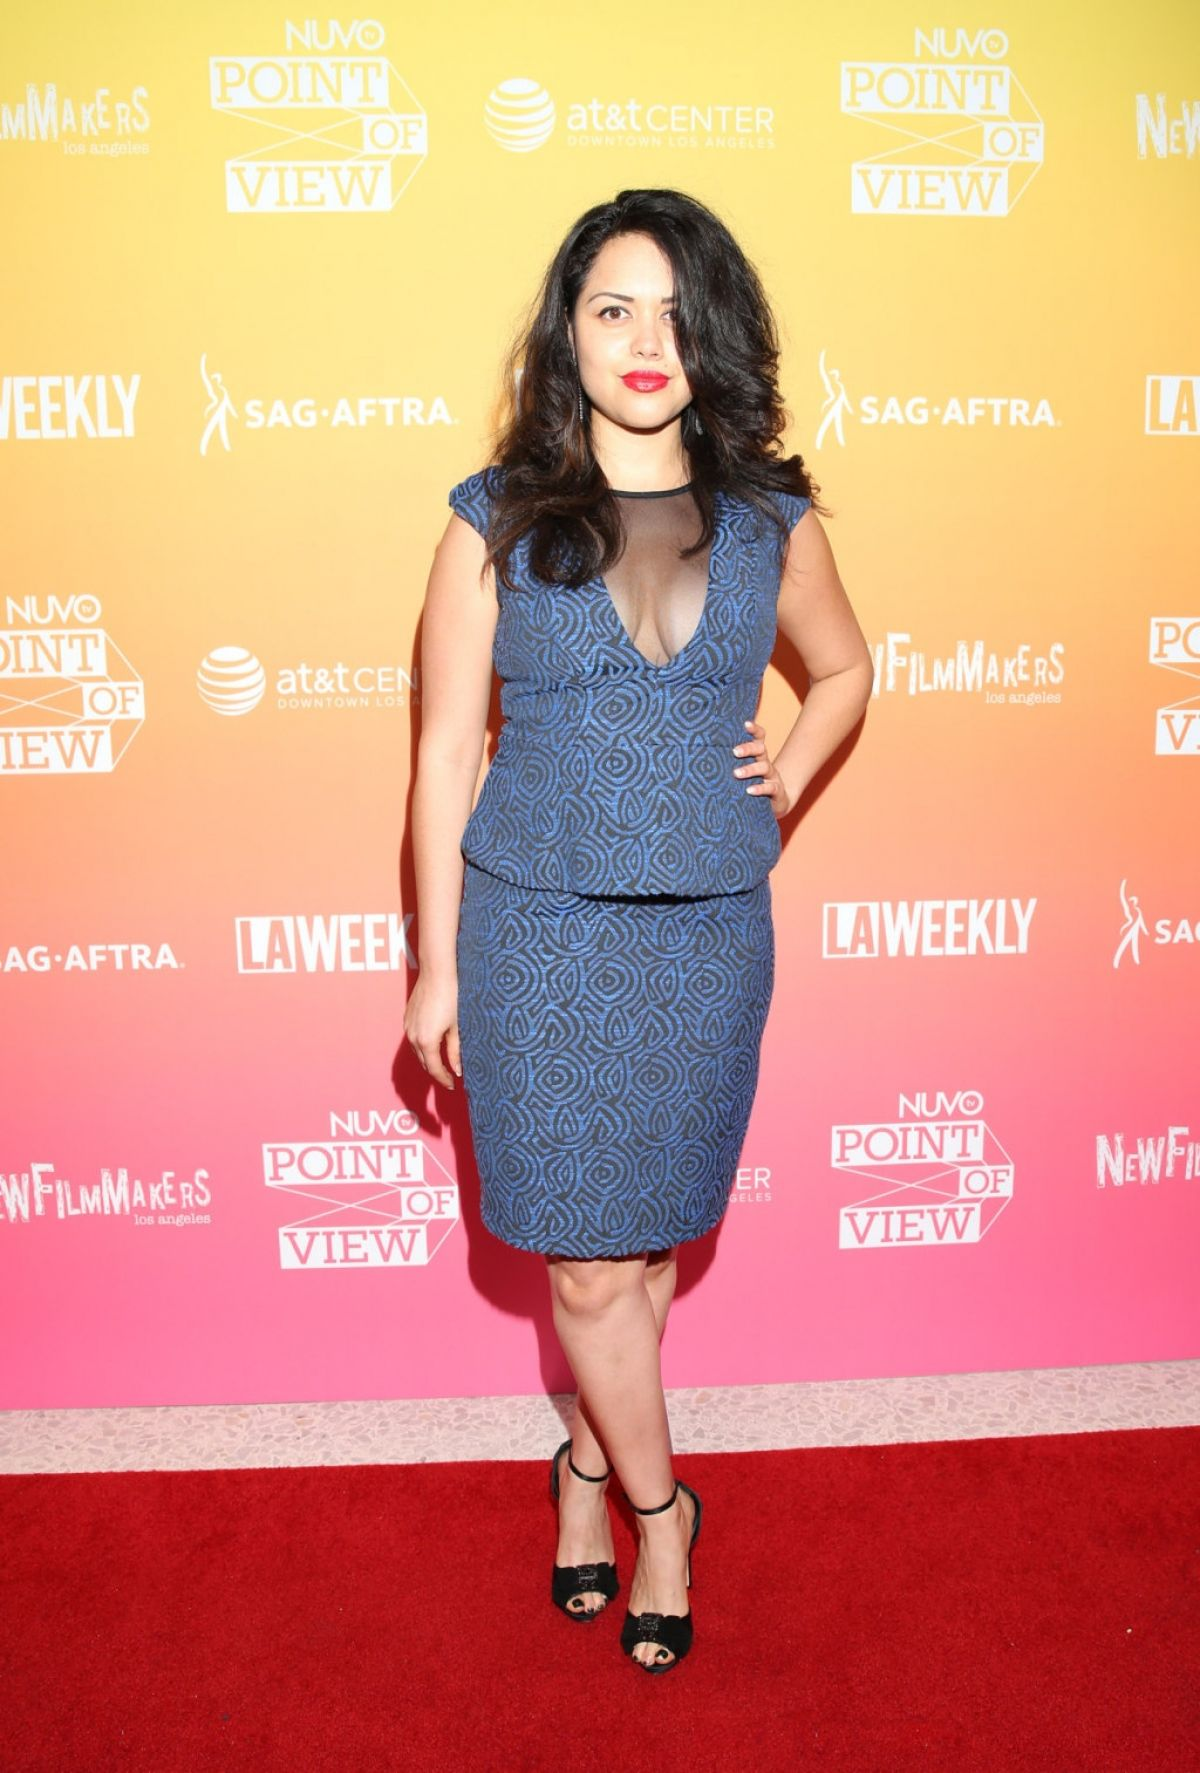 ALYSSA DIAZ at Nuovo Point of View the Emerging Latino Filmmakers Screening